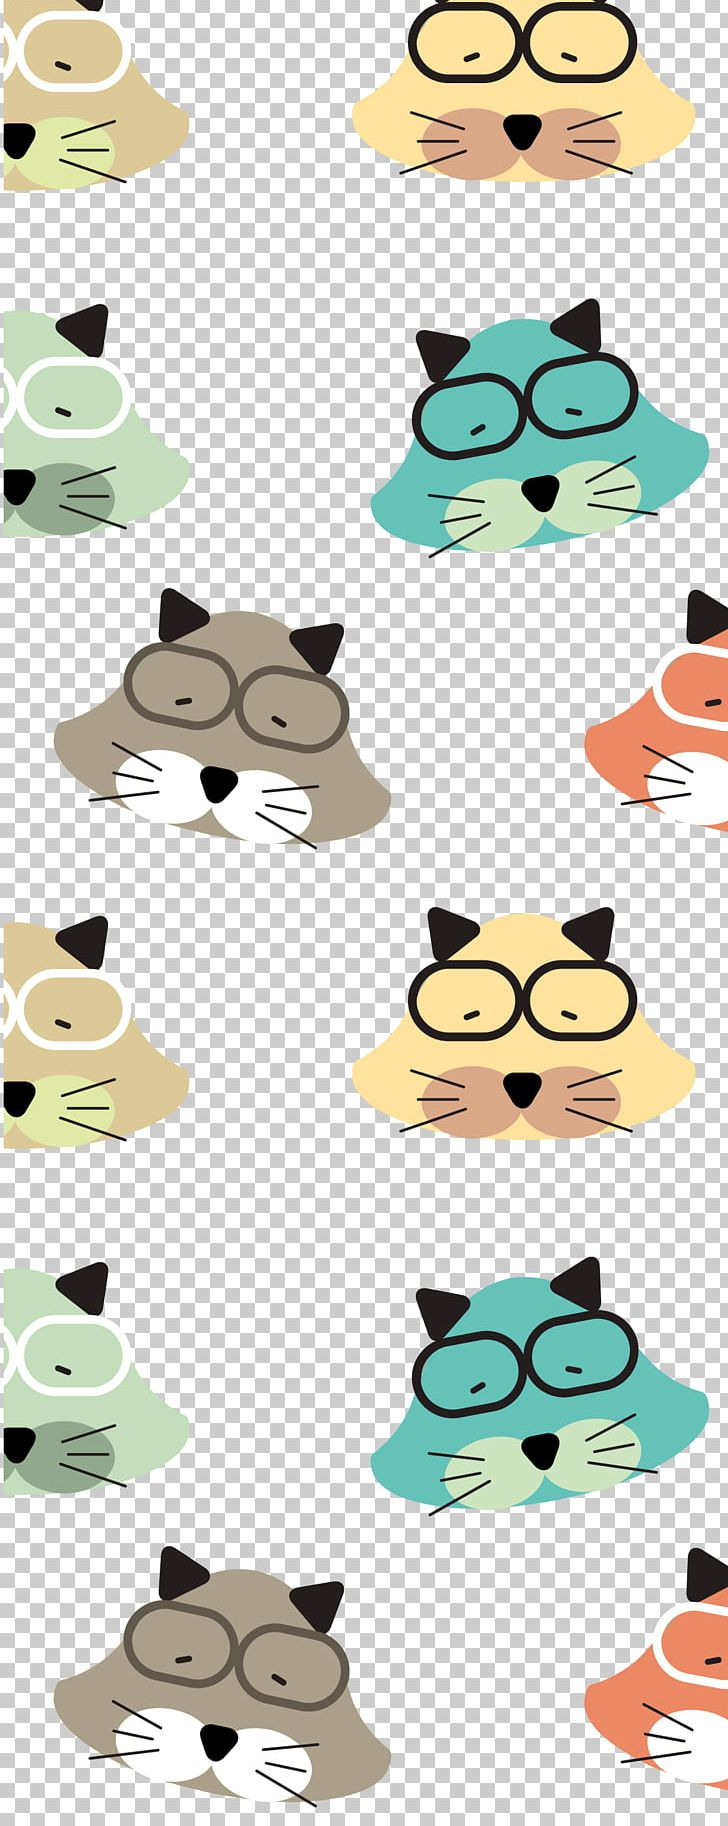 Texture Animals Shading PNG, Clipart, Animals, Avatar, Cartoon, Cute, Cute Animals Free PNG Download